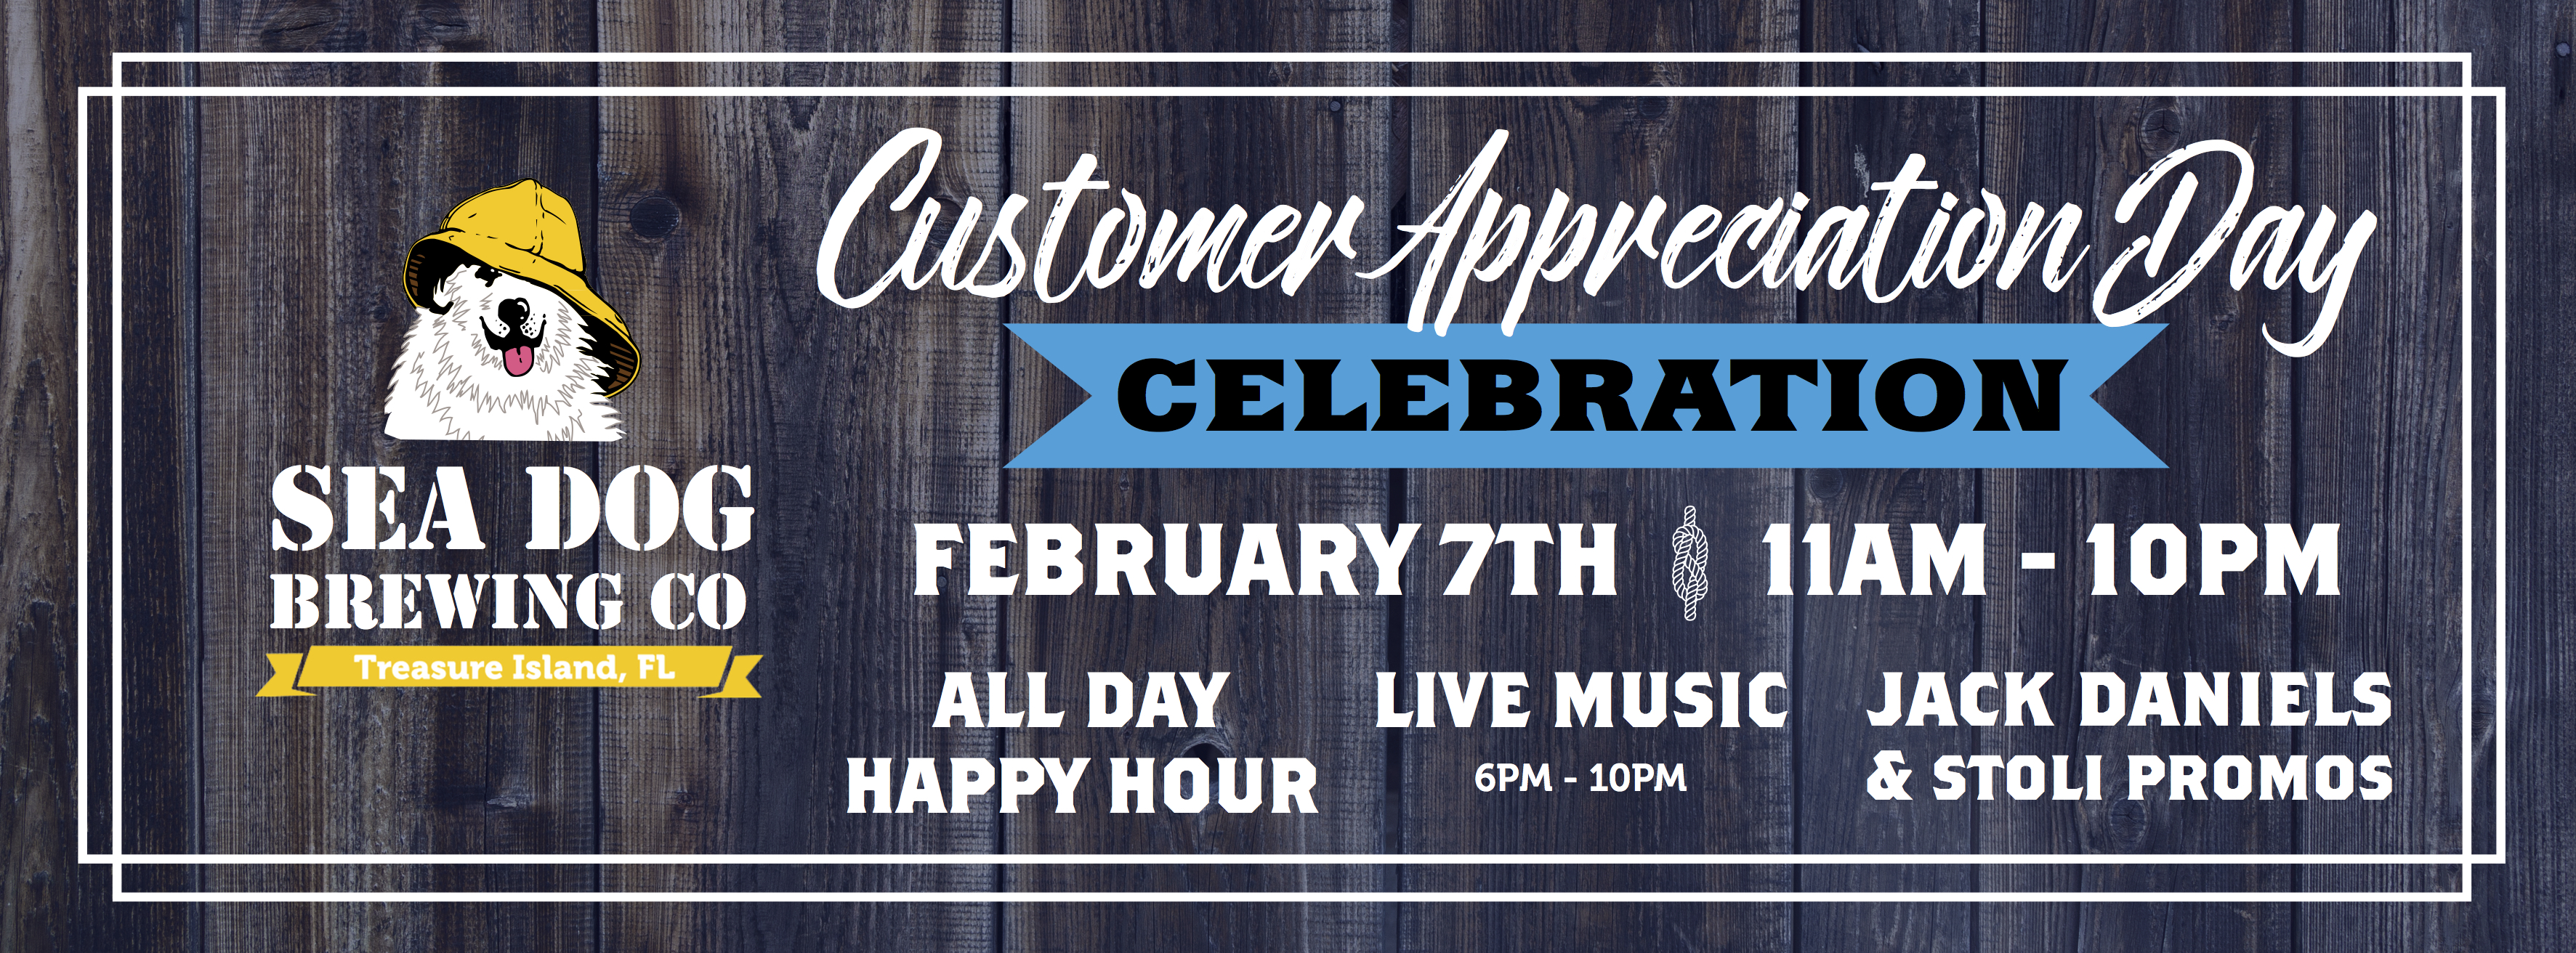 CLIENT NEWS: Sea Dog Brewing To Host Customer Appreciation Day